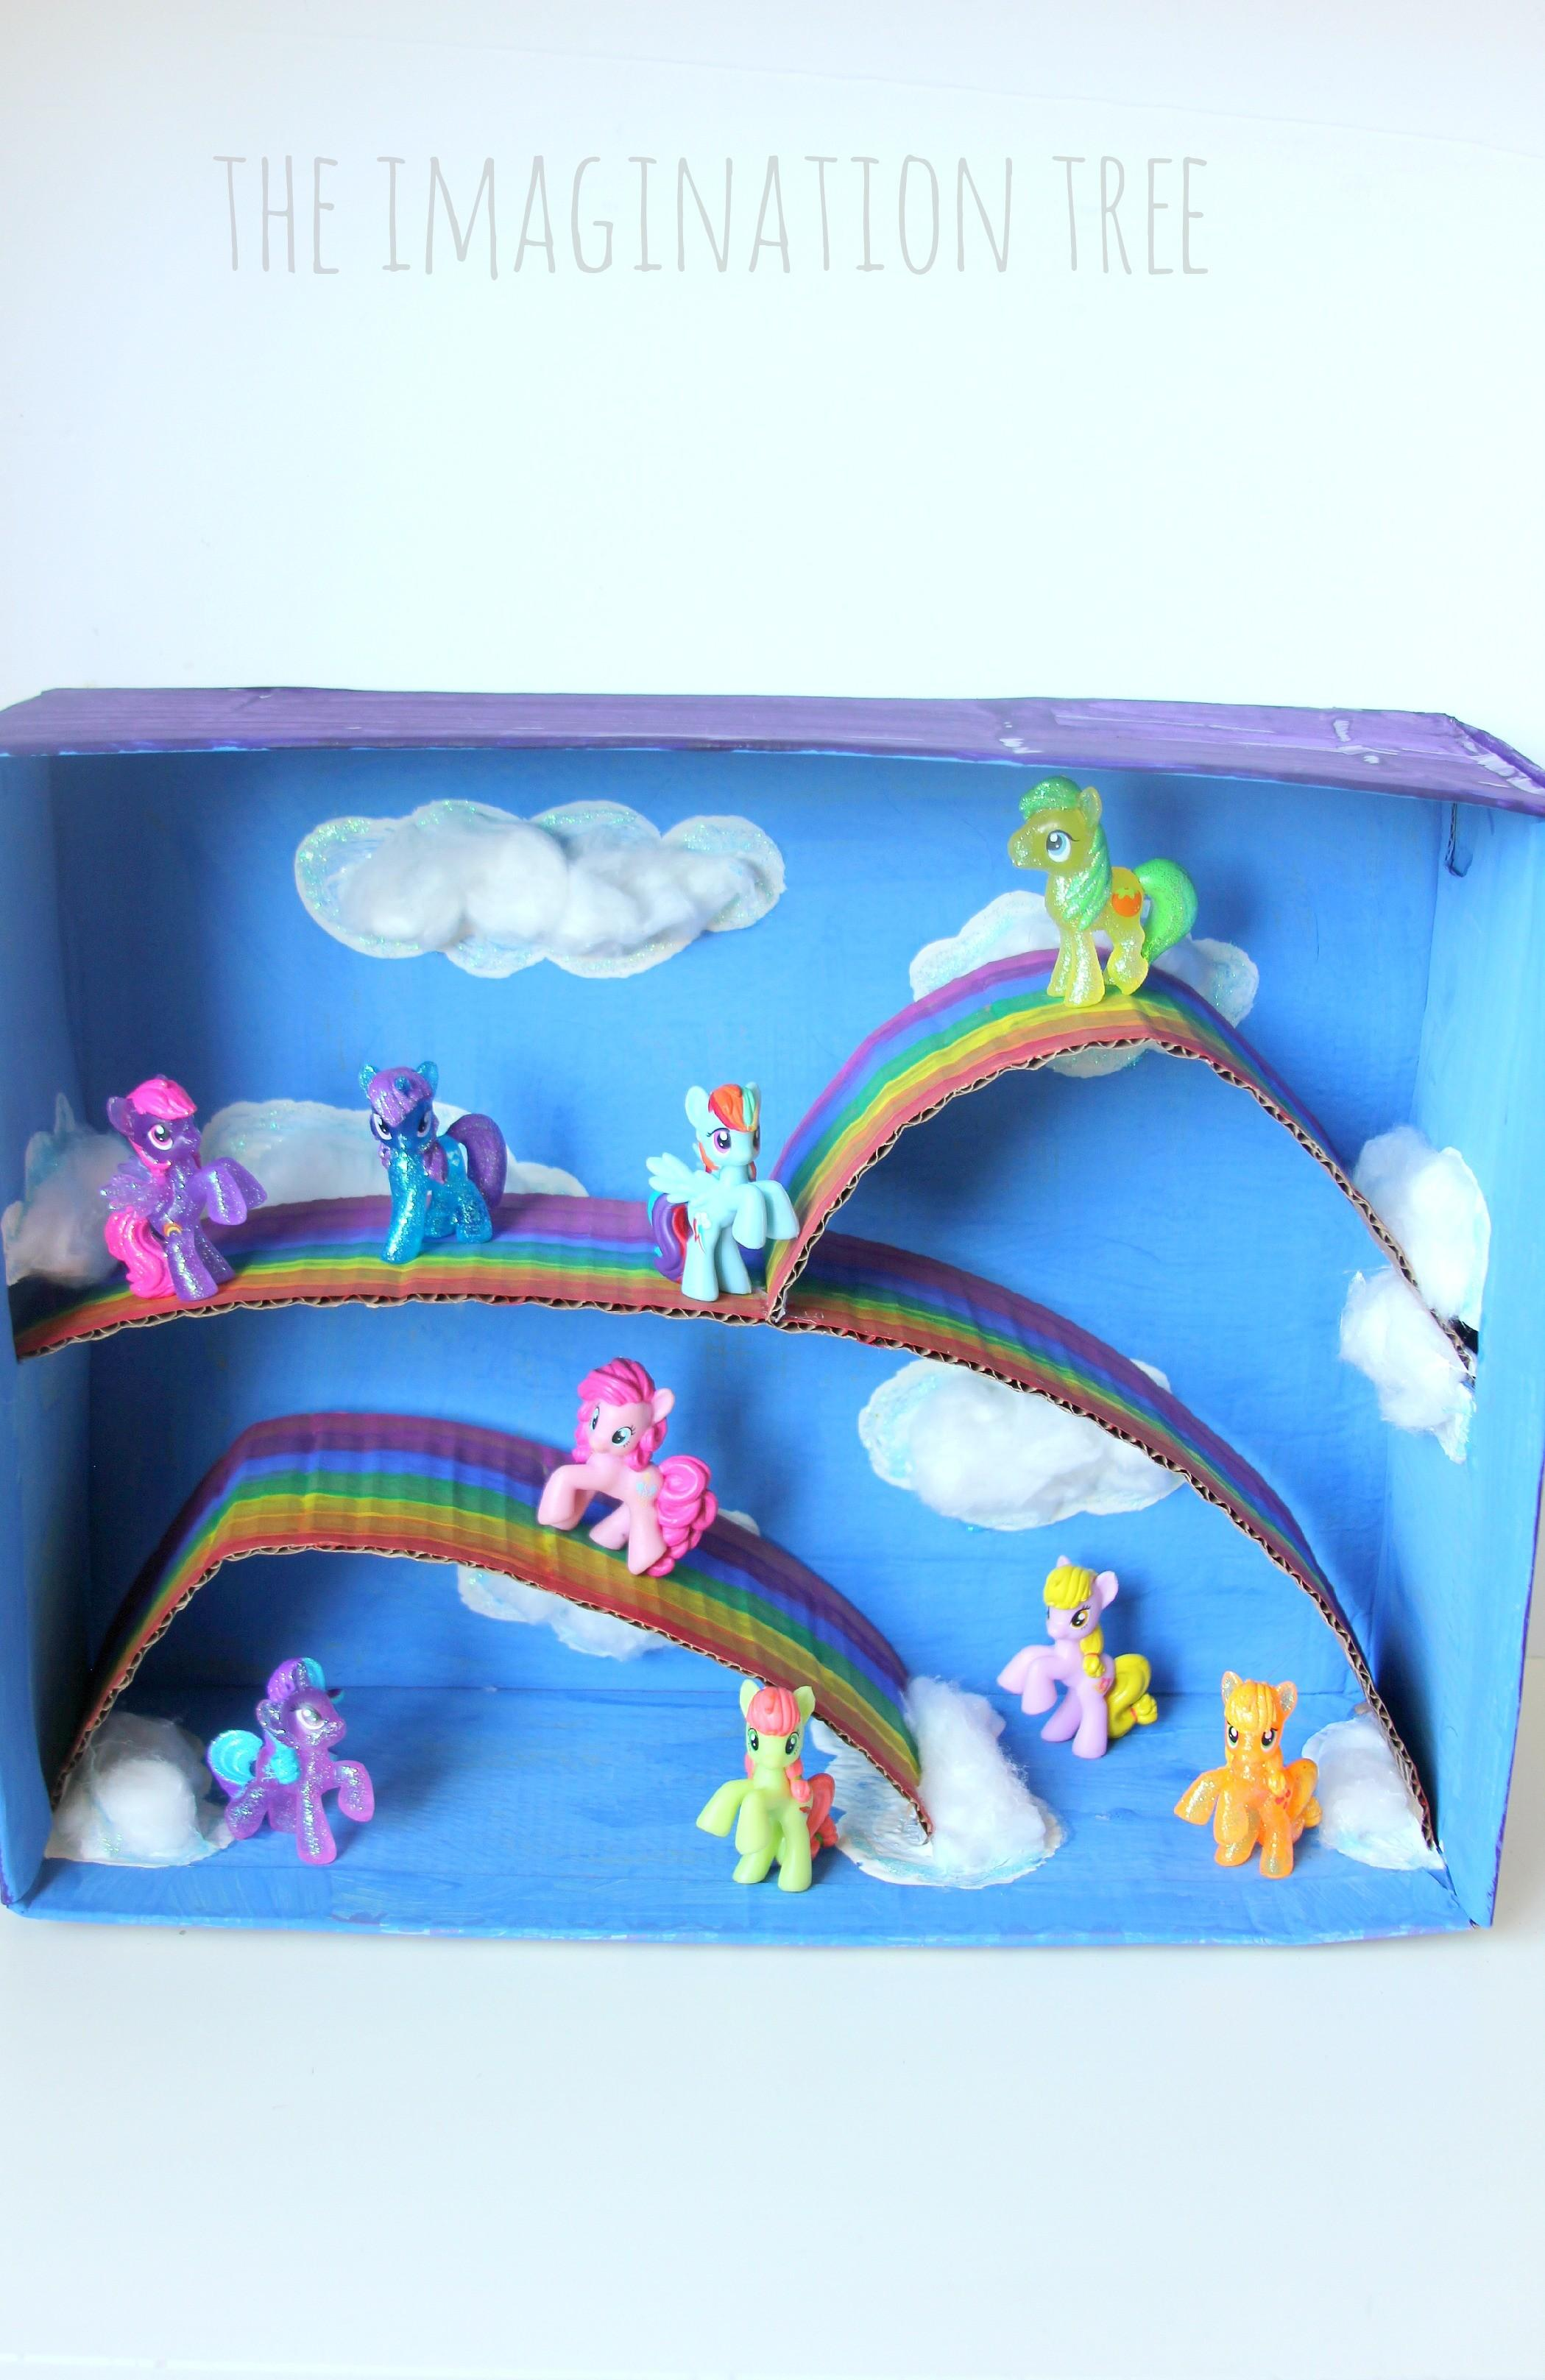 Little Pony Magical Small World Imagination Tree